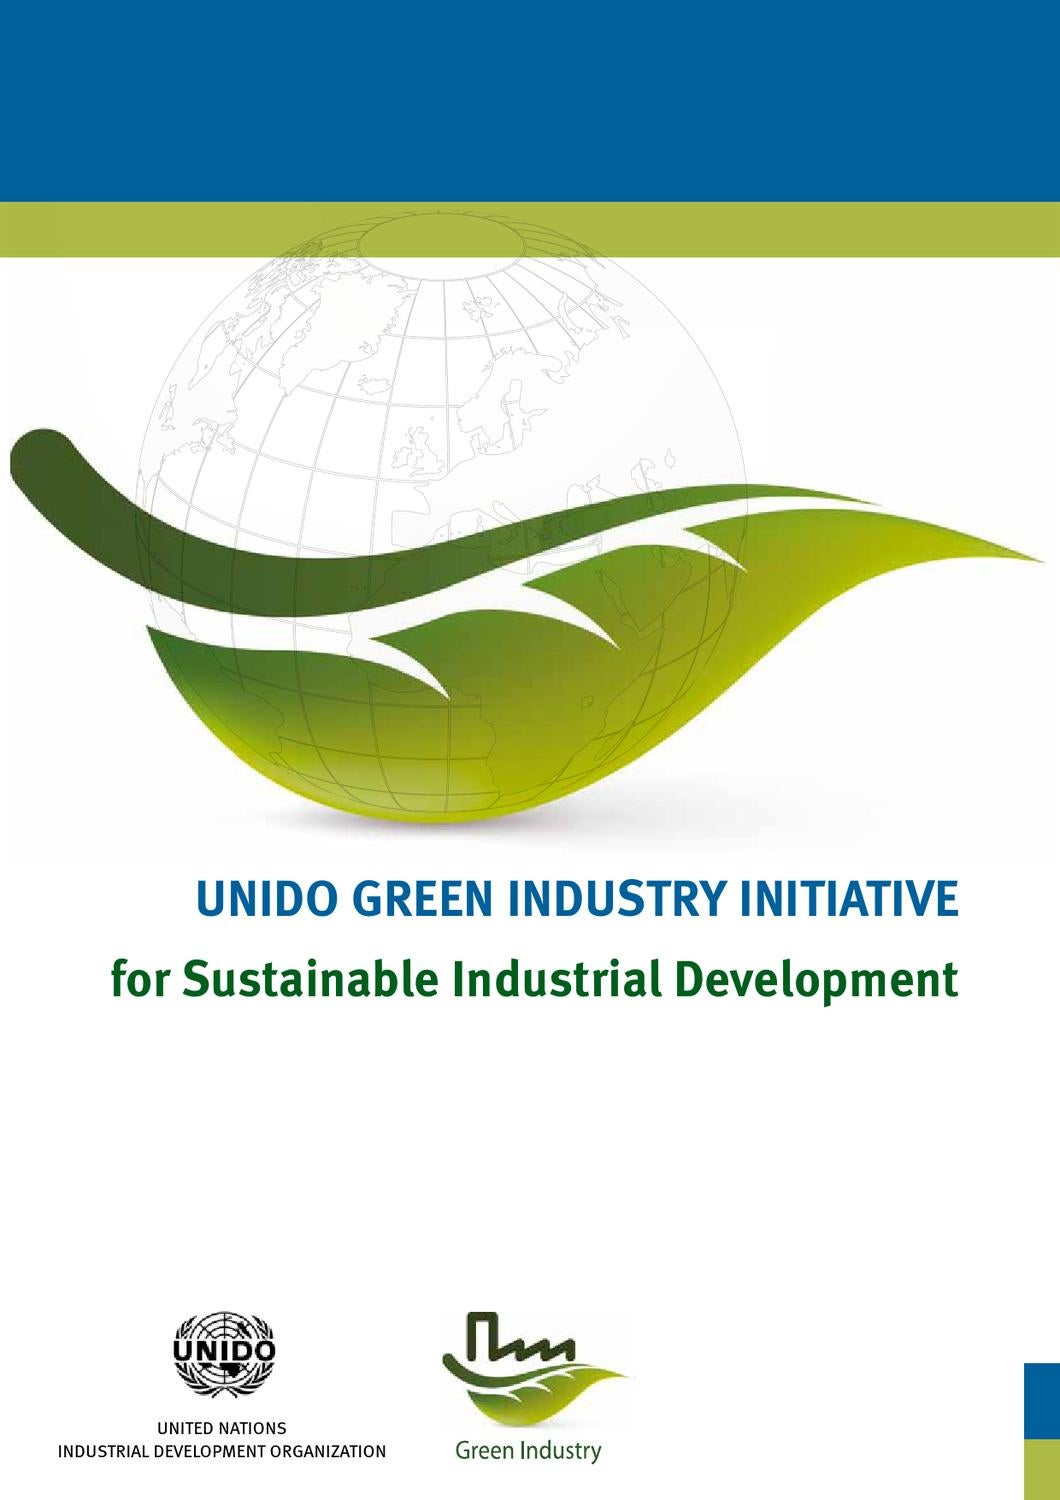 environmental sustainability and industrialized development can Our common future, chapter 8: report of the world commission on environment and development: industrial growth and sustainable industrial development in a.